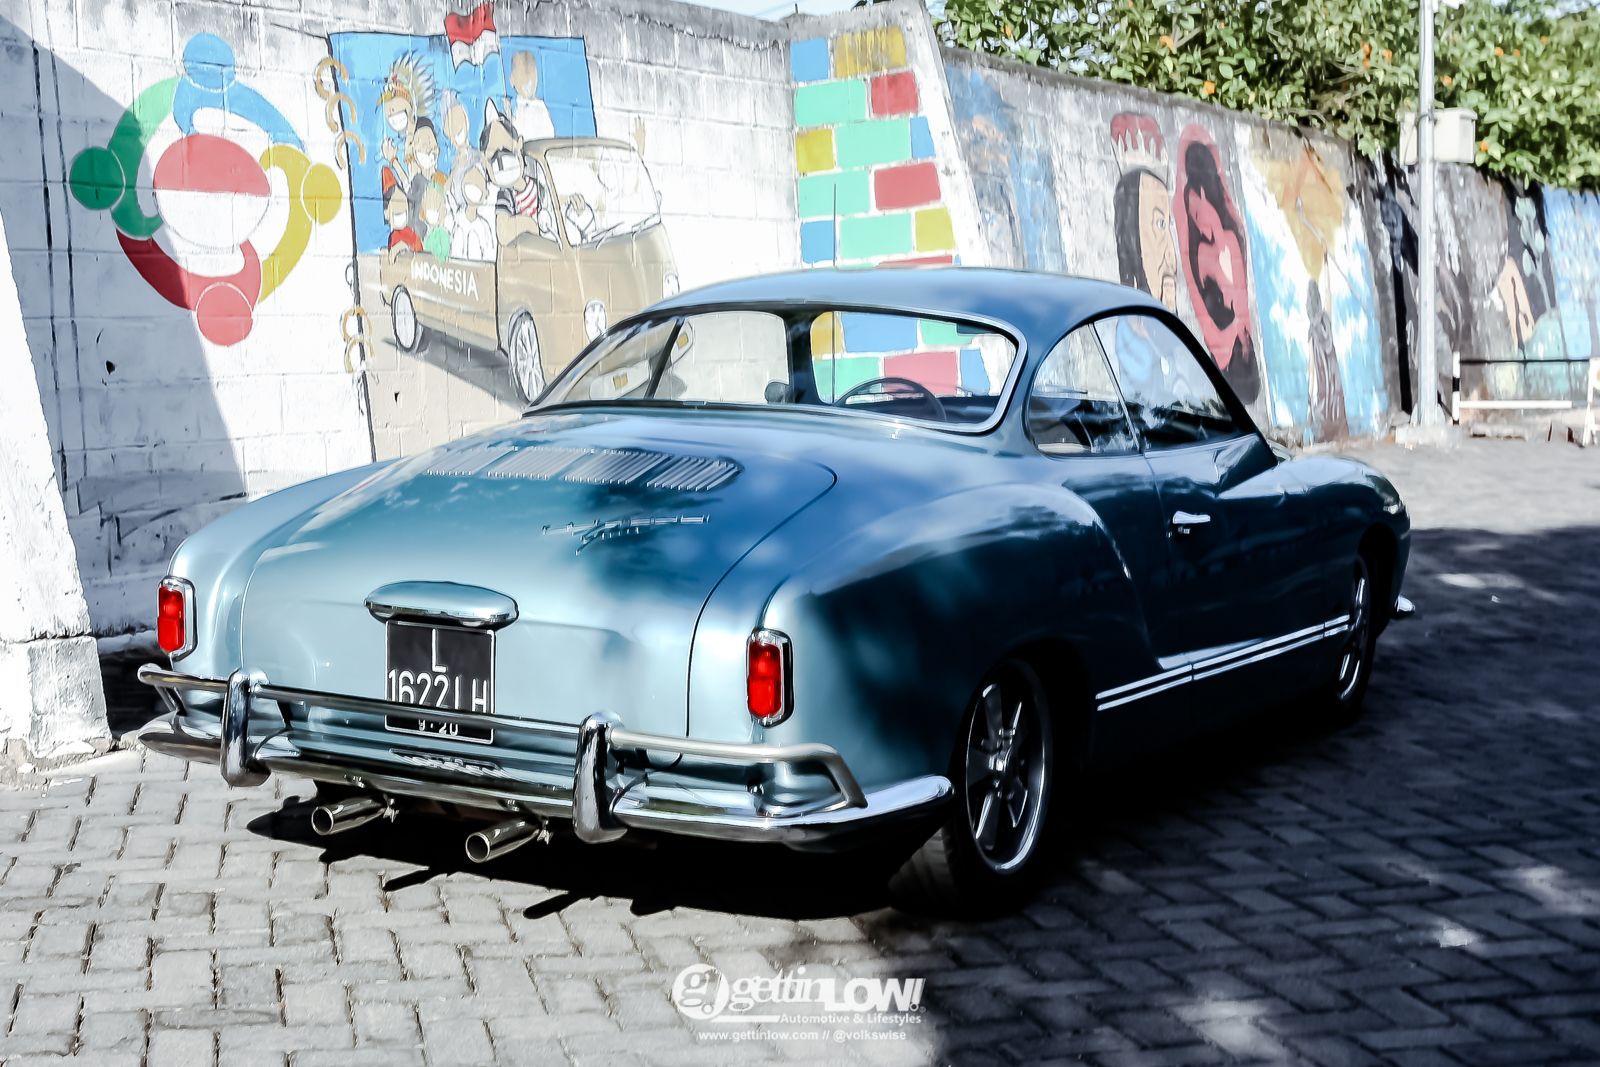 KarmannGhia_lowlight_1959-10